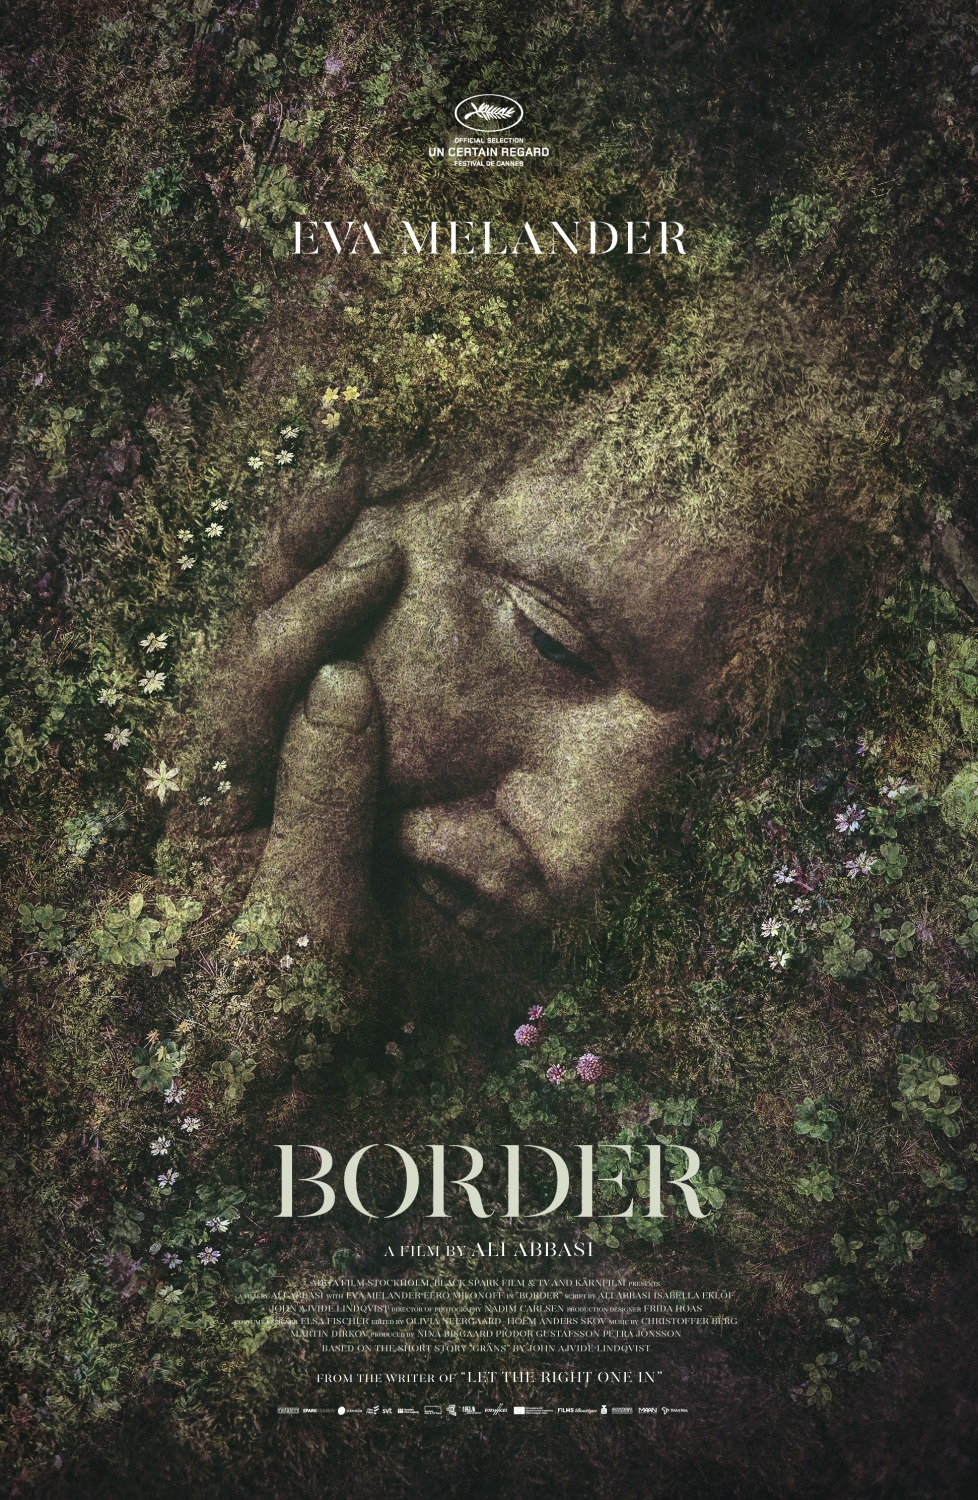 Grӓns (Border) film review Cannes 2018: John Ajvide Lindqvist adaptation is beautifully twisted